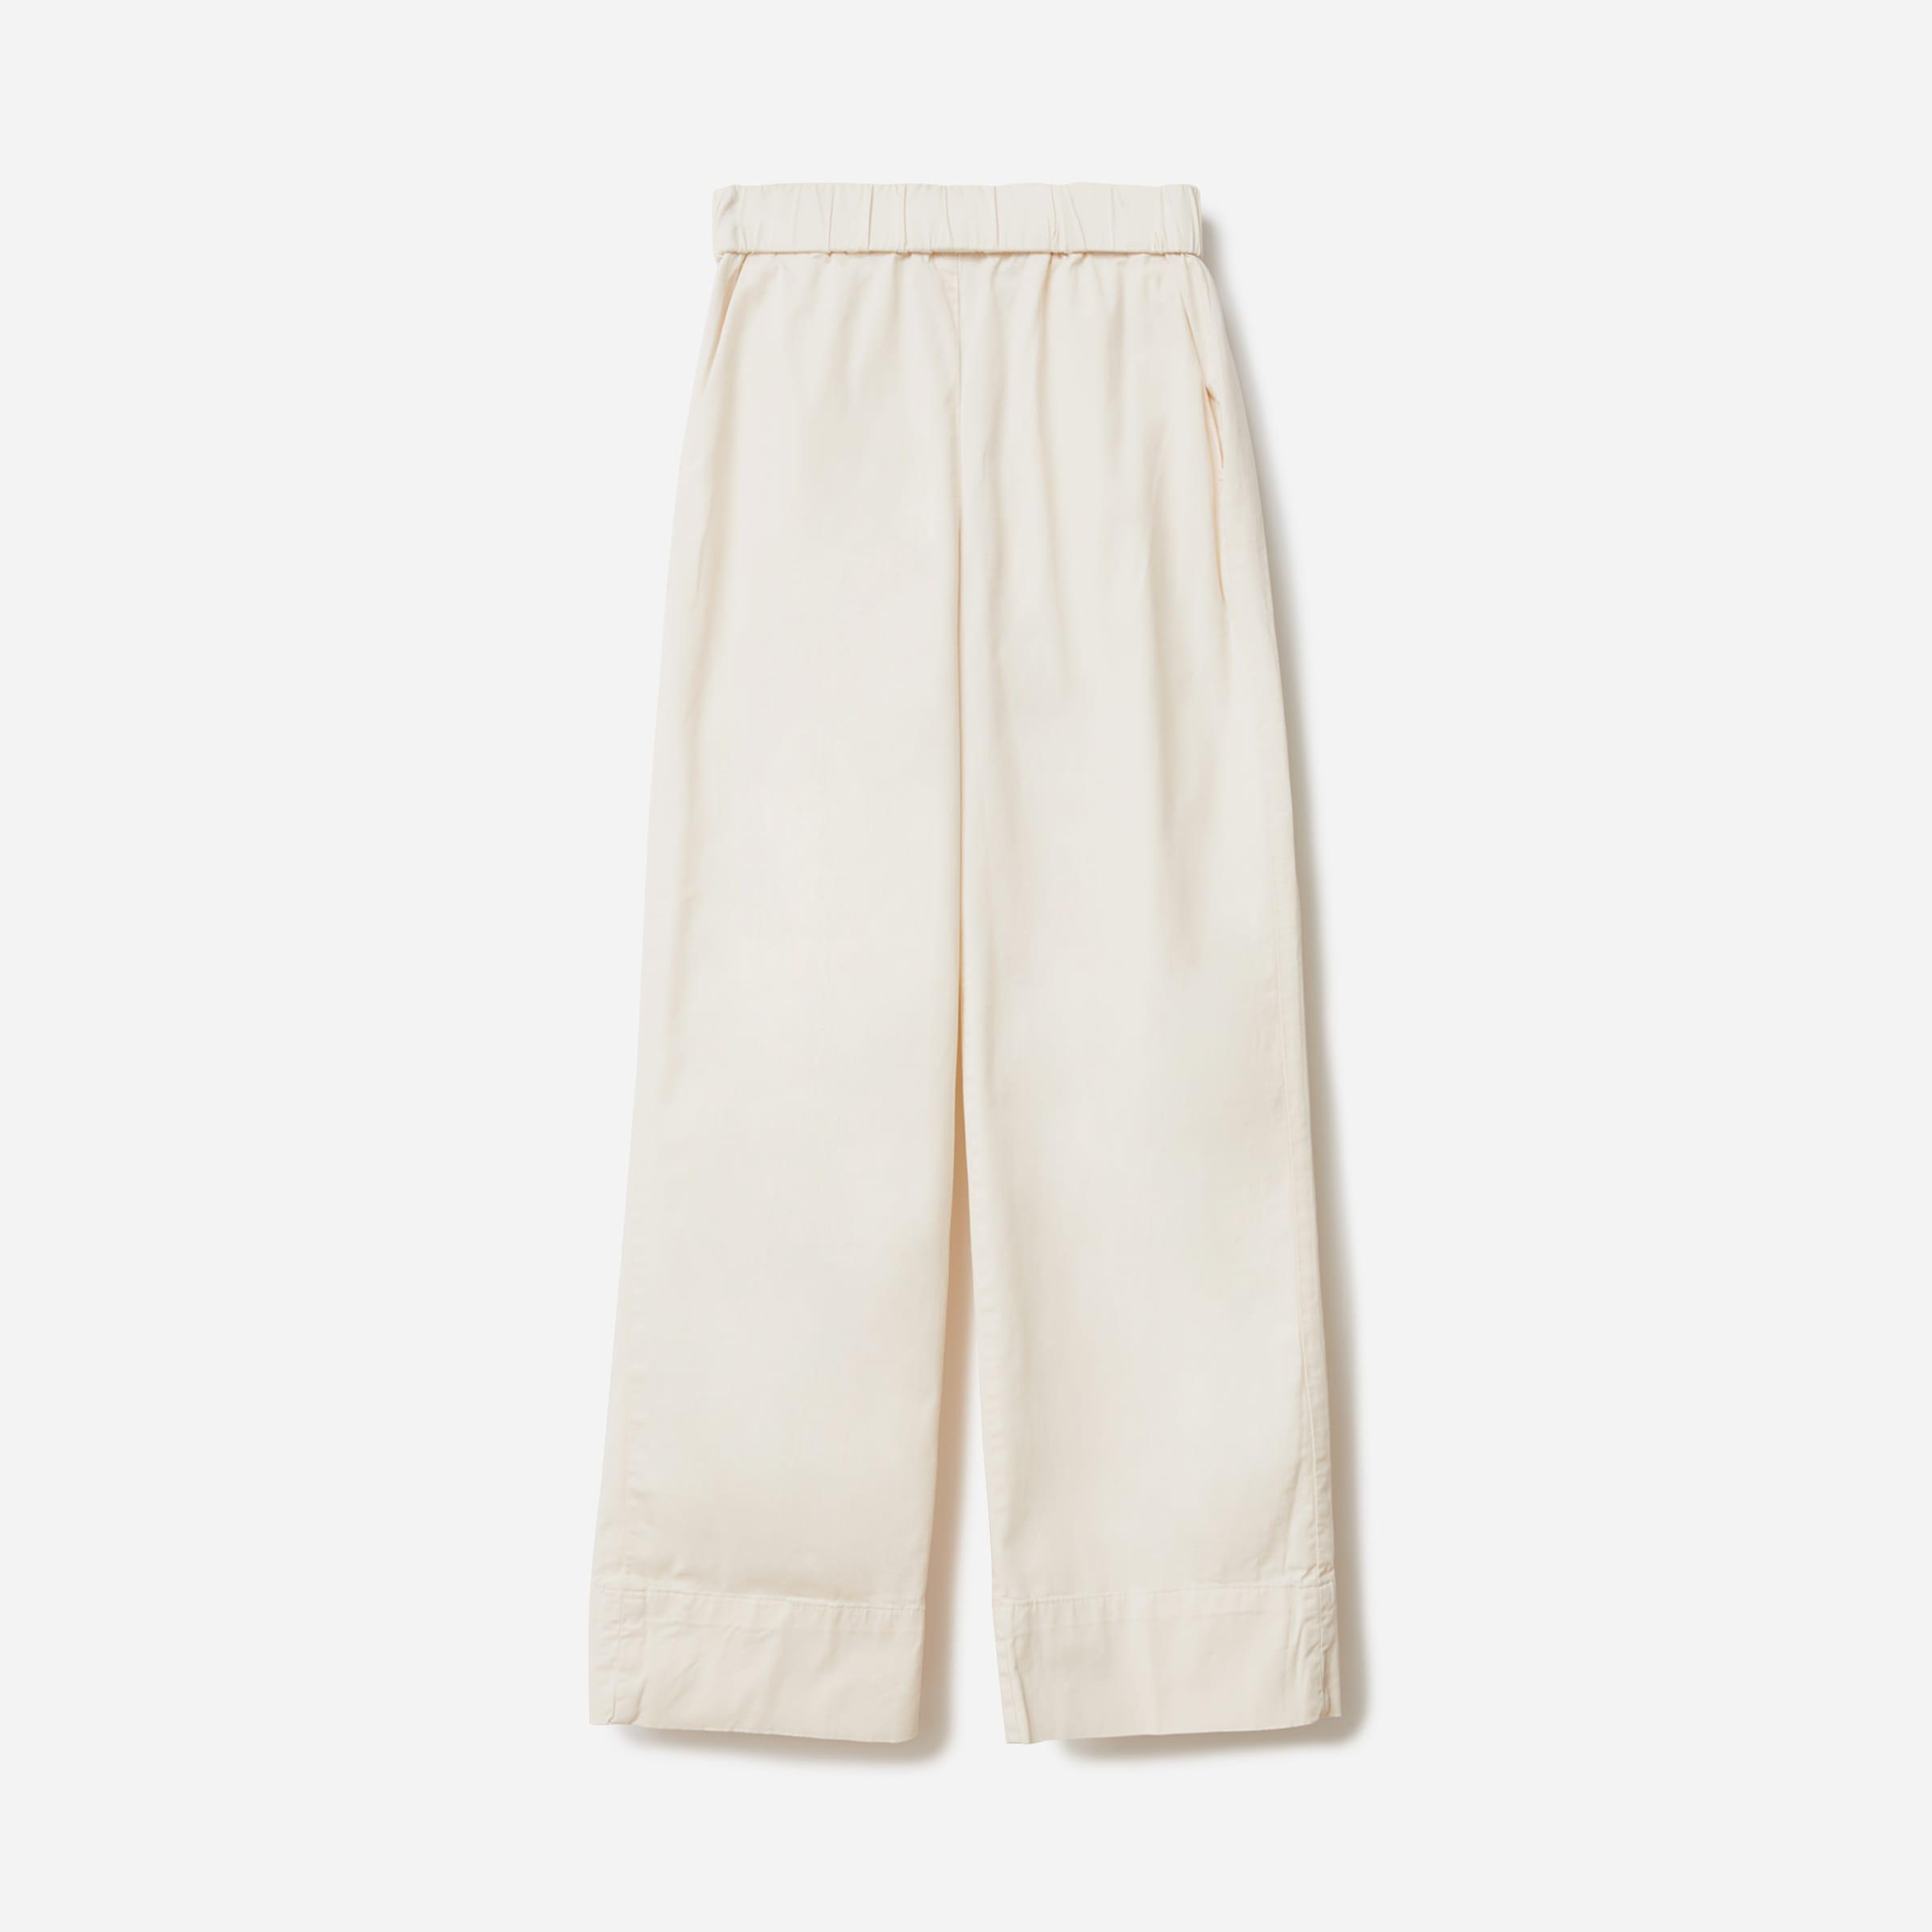 The Easy Pant 3